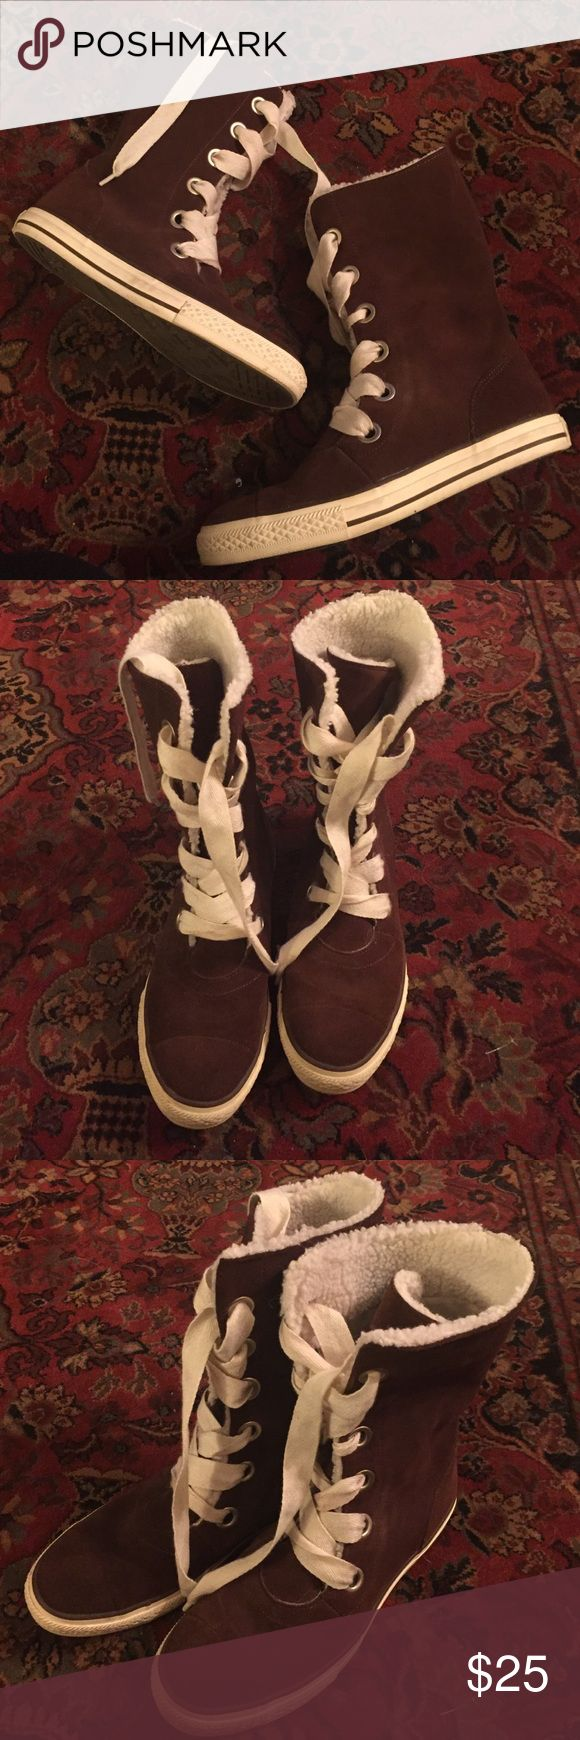 Tall leather brown converse boots NWOT. Tall genuine leather lace up Converse boots. Shearling inside. Converse Shoes Lace Up Boots